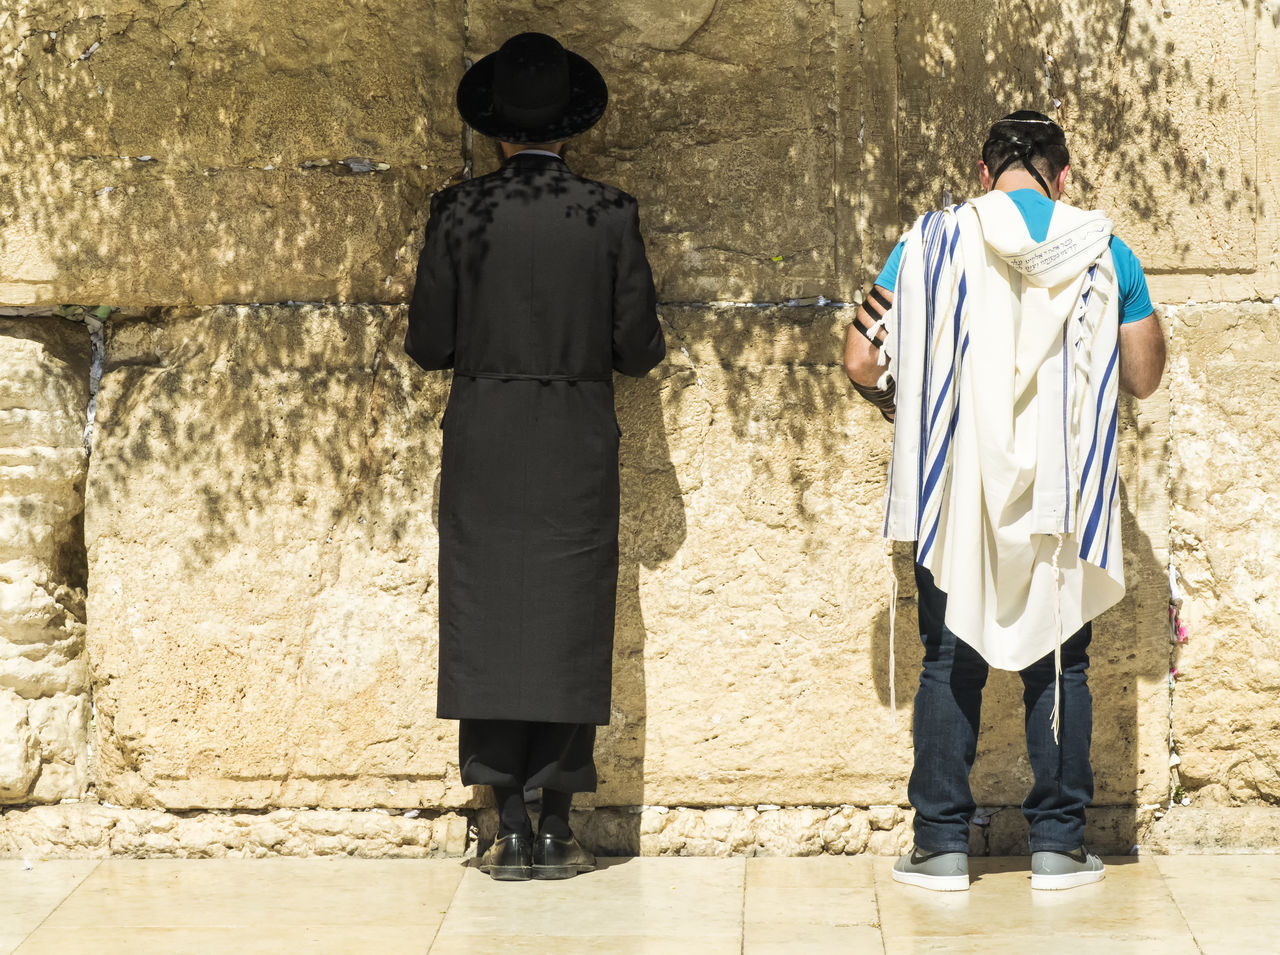 # #back #fashion #gerusalemme #HatDay  #jerusalem #jewish #june2017 #manside #Muro #murodelpianto #olympus #omdem5markii #outfit #OOTD #peace #people #PRAY #Shadow #streetphotography #wall #westernwall Lifestyles Outdoors People Standing